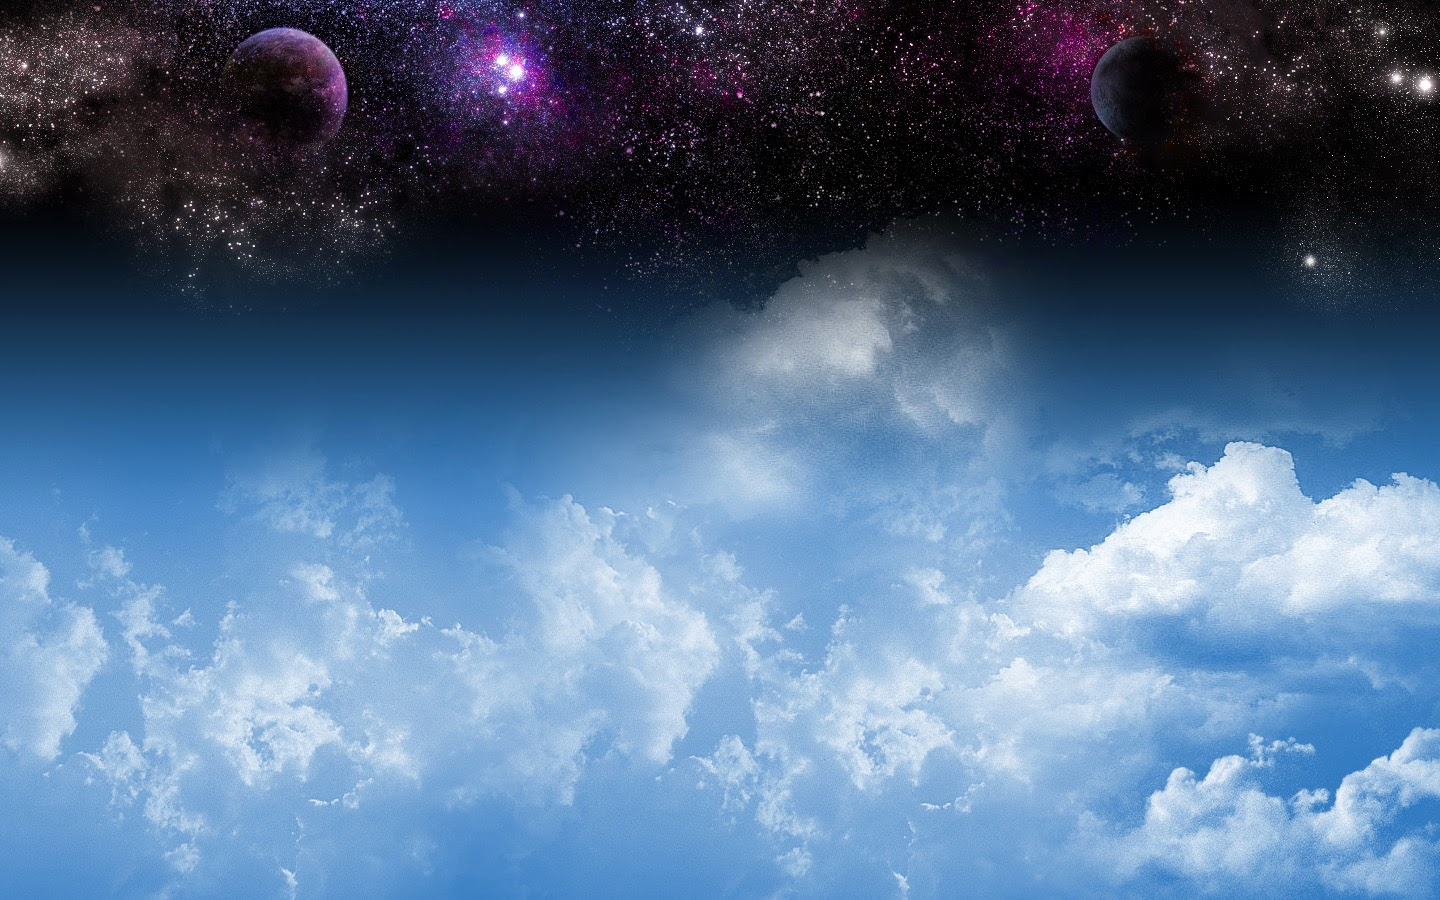 Wallpapers HQ - 18 Fantasy-Astronomy HD Wallpapers - 1001Best ...